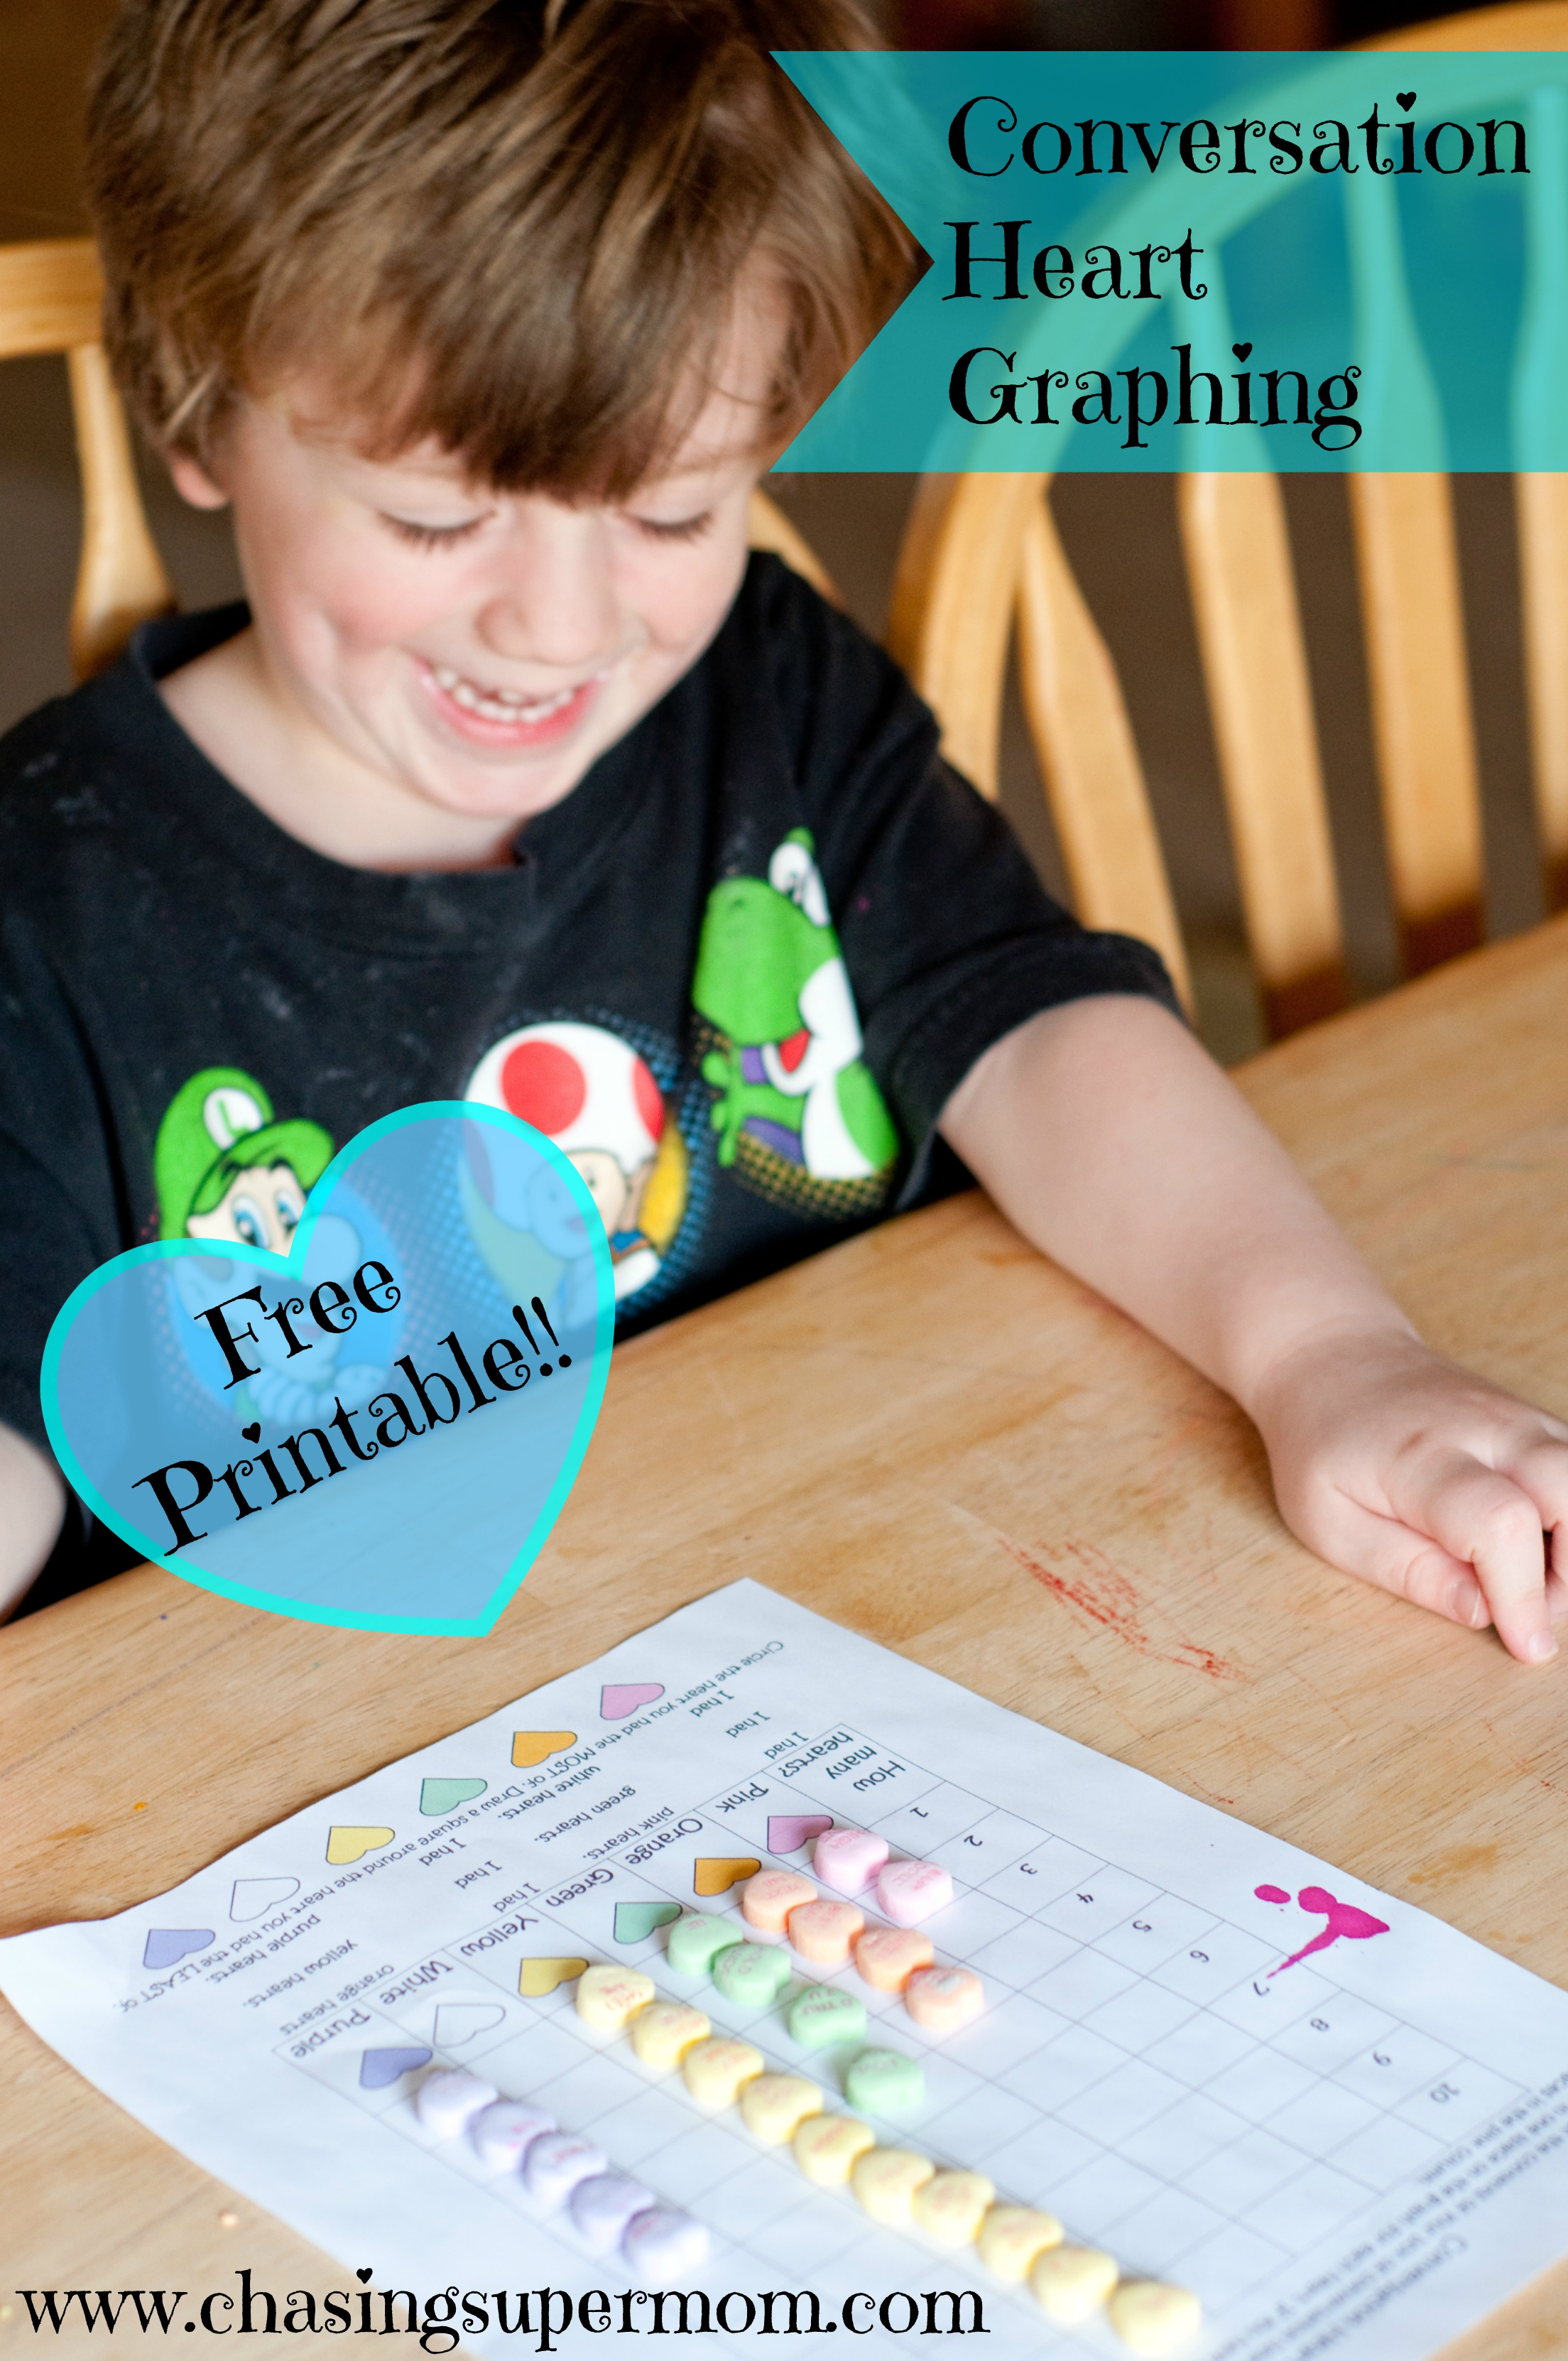 Conversation Hearts Graphing Worksheet – Free Valentine's Day Printable